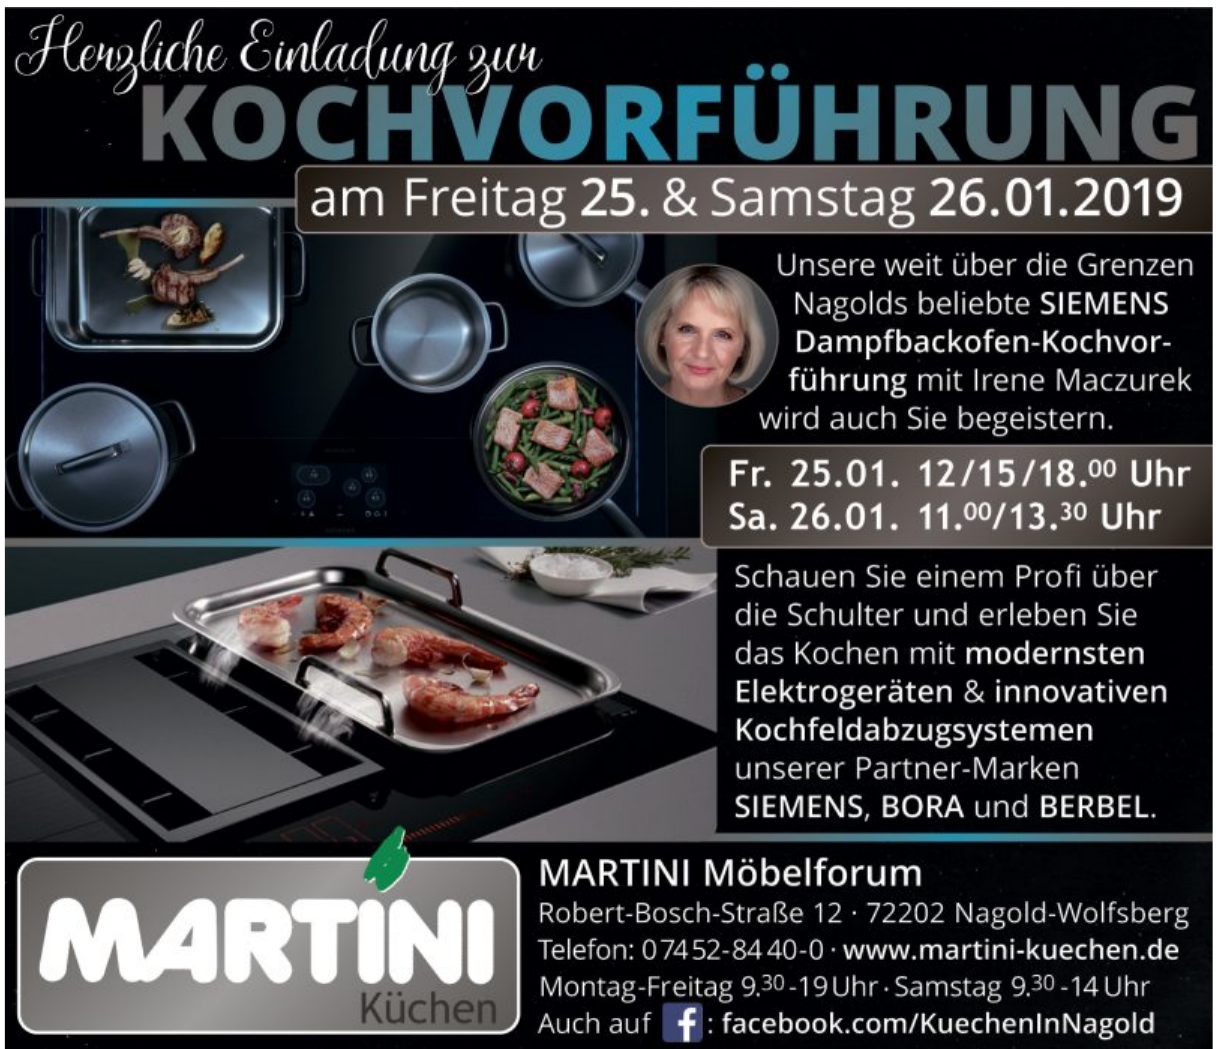 Martini Möbelforum